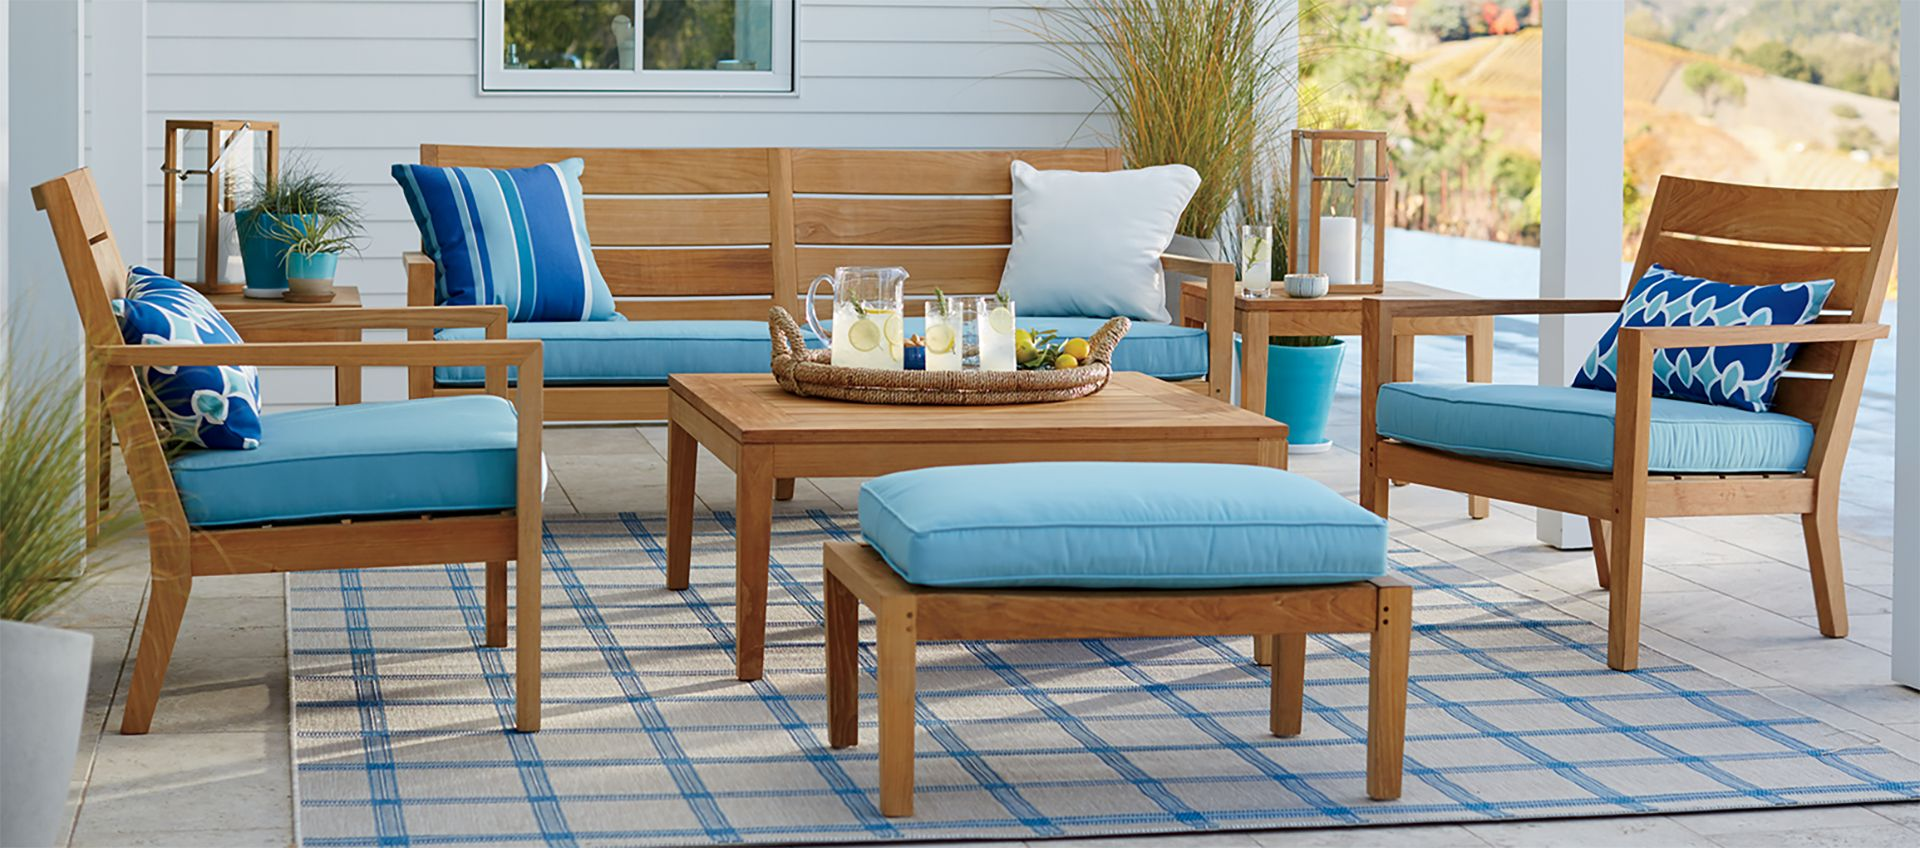 crate barrel outdoor furniture. Our Regatta Outdoor Collection: The Gold Standard In Teak. At Crate And Barrel Furniture